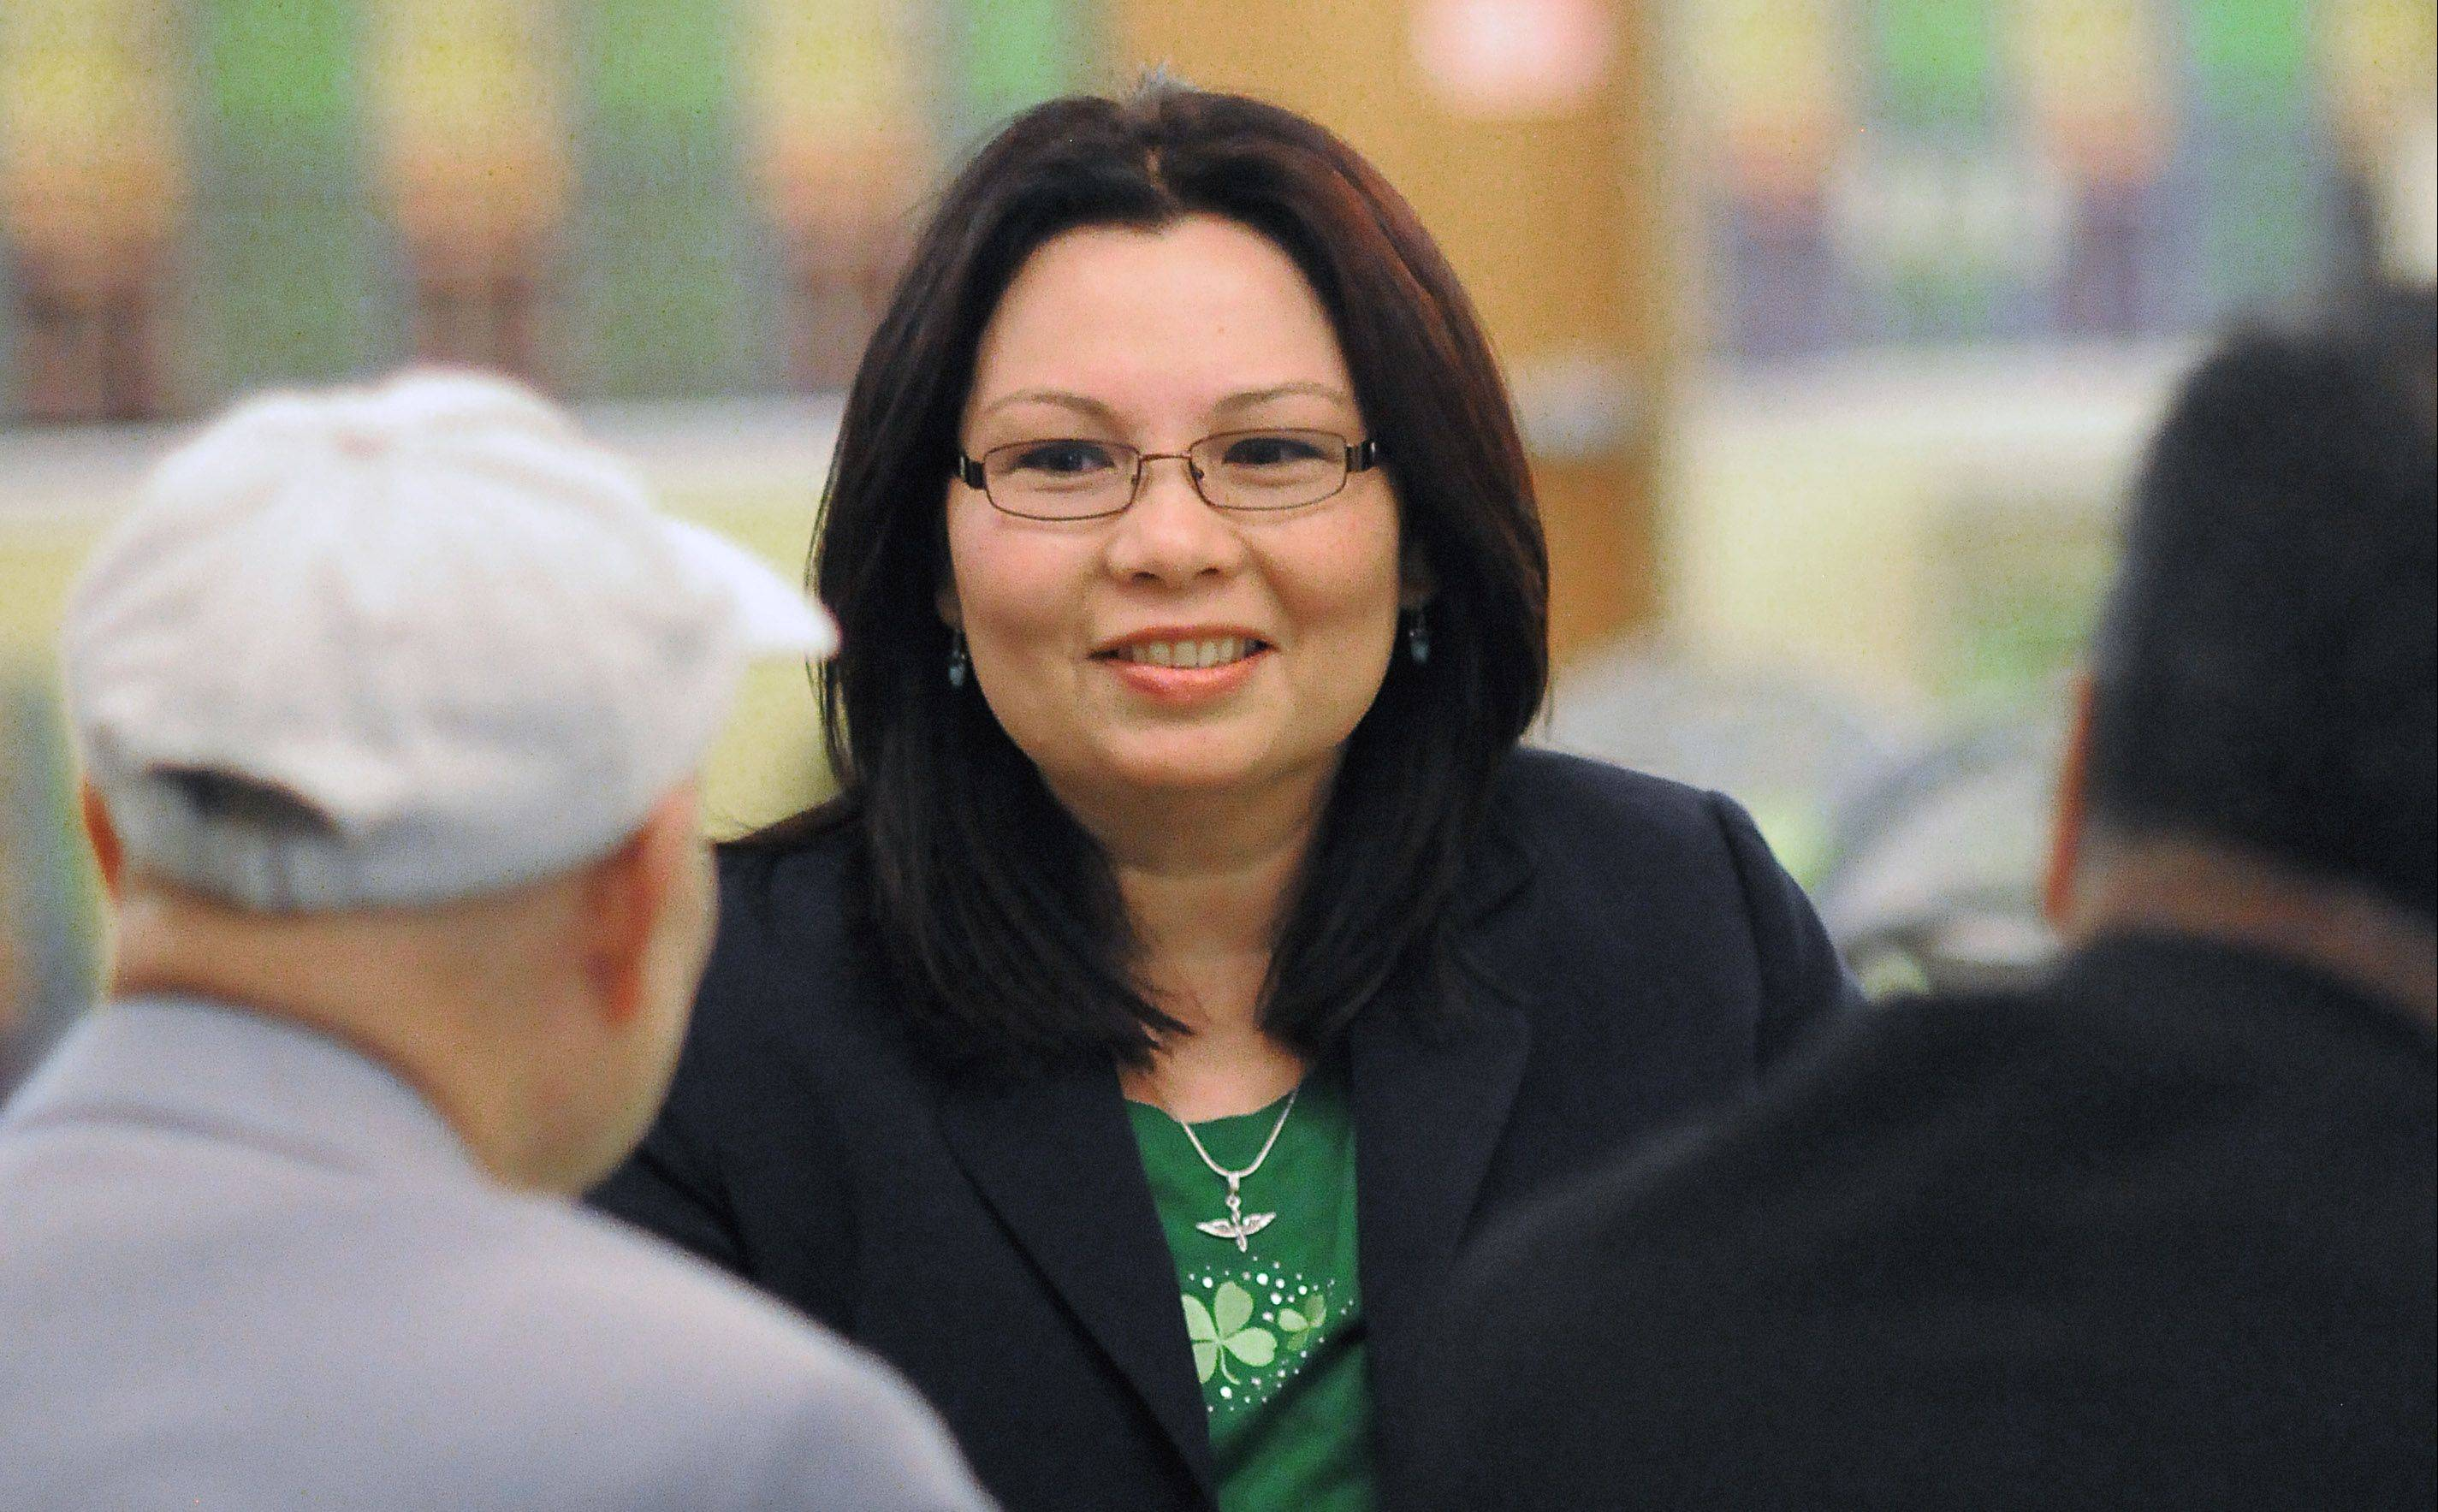 Eighth Congressional District Democratic candidate Tammy Duckworth of Hoffman Estates visits Saysana Songvilay of Elgin and other Laotian community leaders in Elgin.